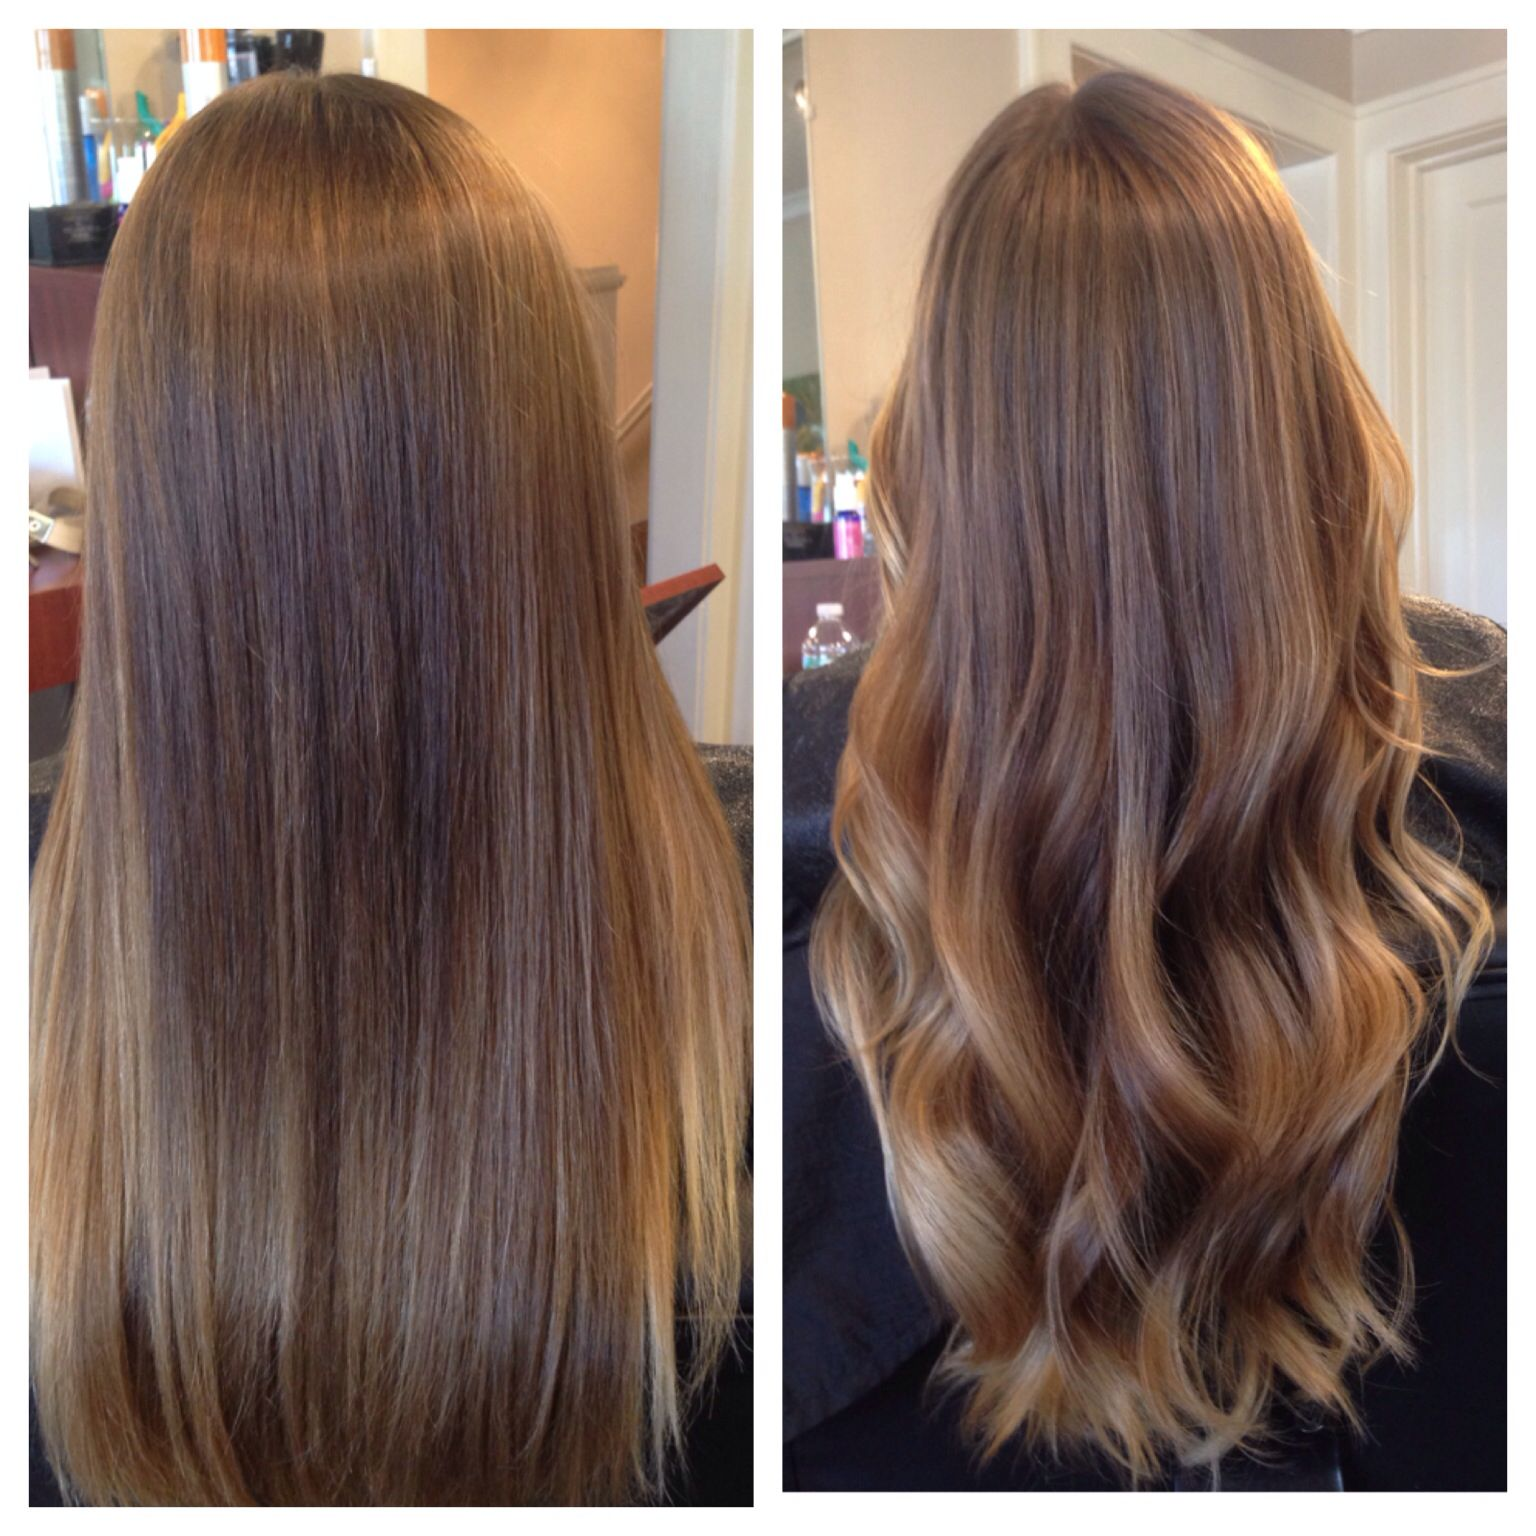 Balayage ombre done well means you can go straight or wavy for What does ombre mean